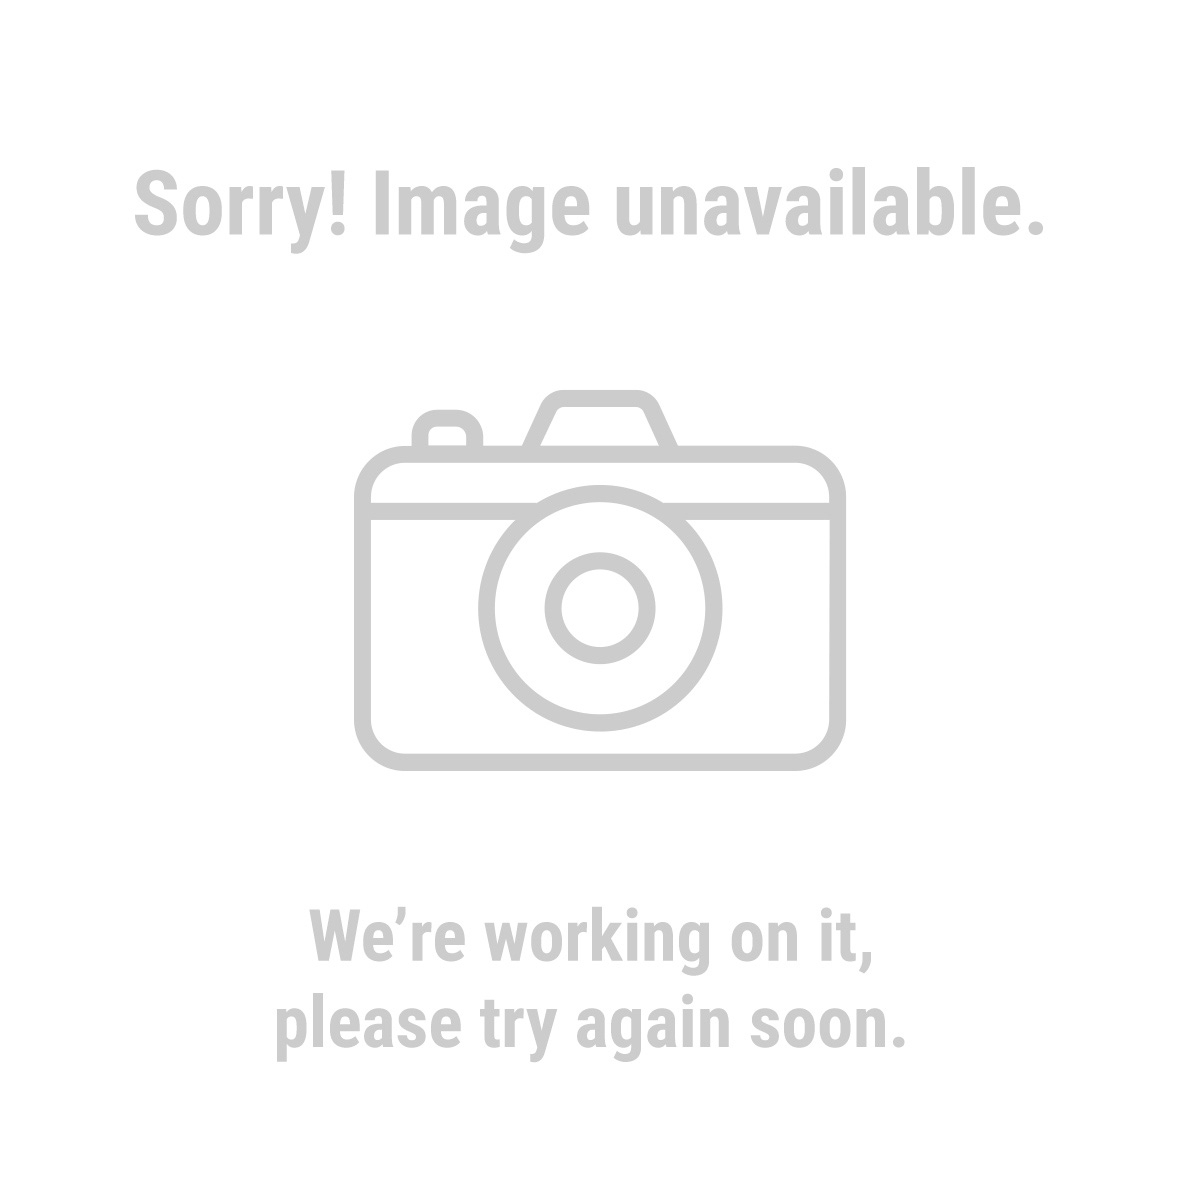 Central Pneumatic 62695 125 PSI Air Flow Regulator with Gauge